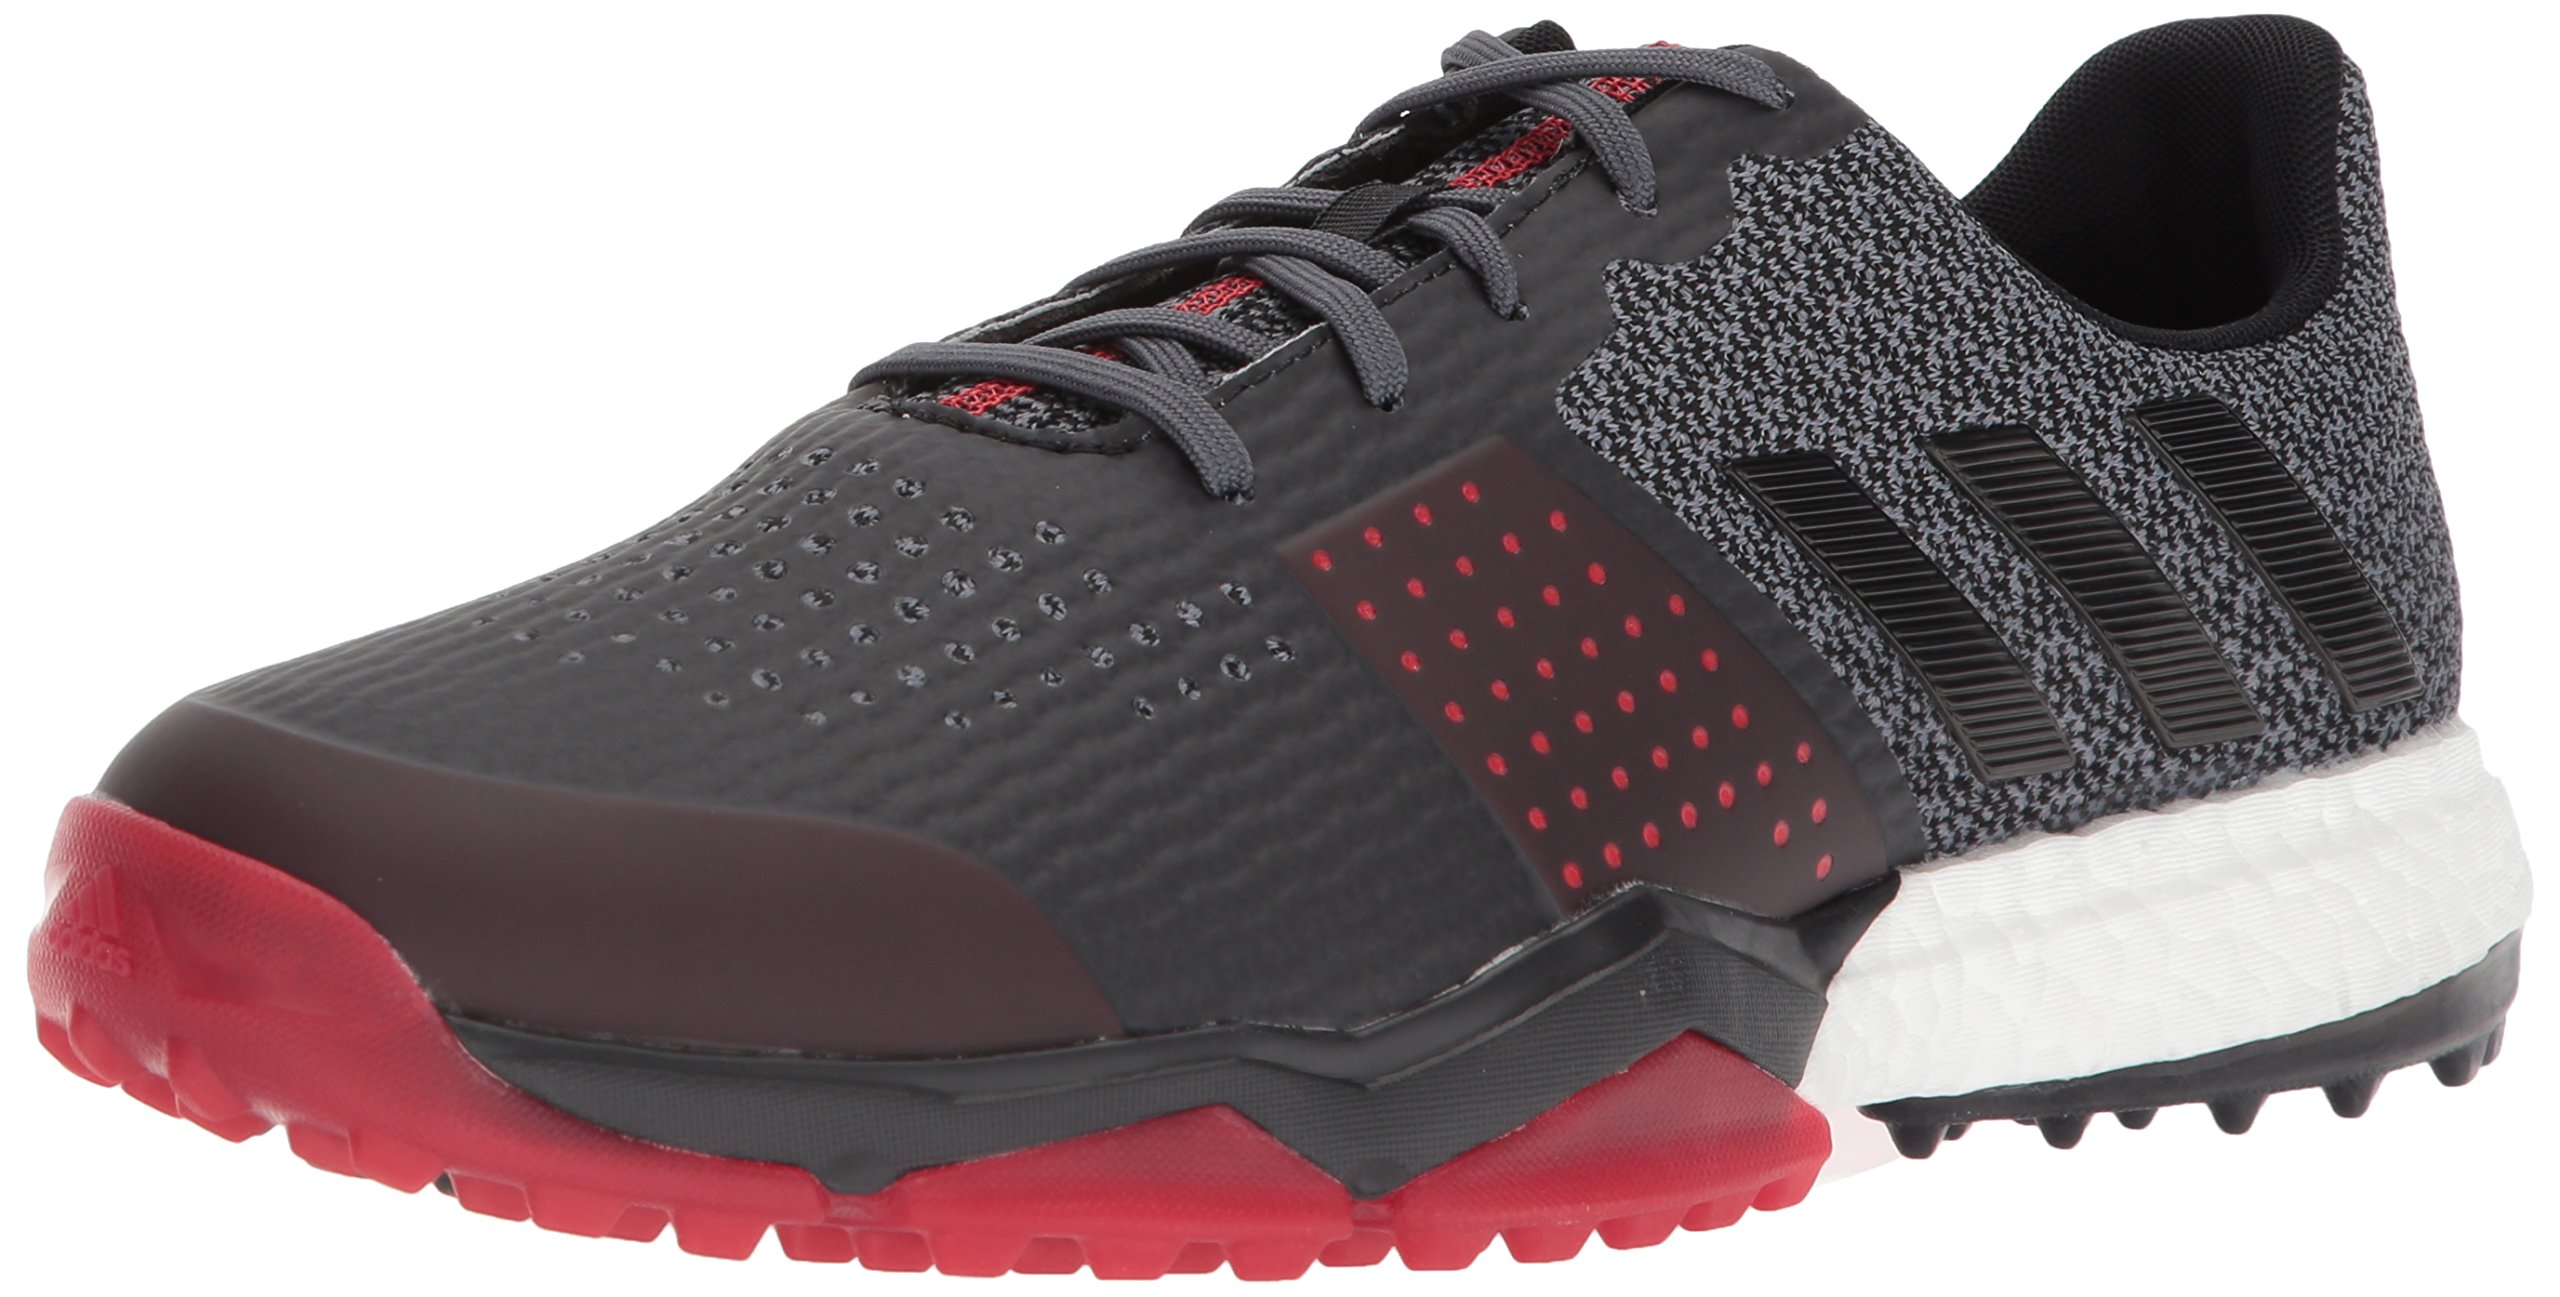 Galleon - Adidas Men s Adipower Sport Boost 3 Golf Shoe ebdb73119